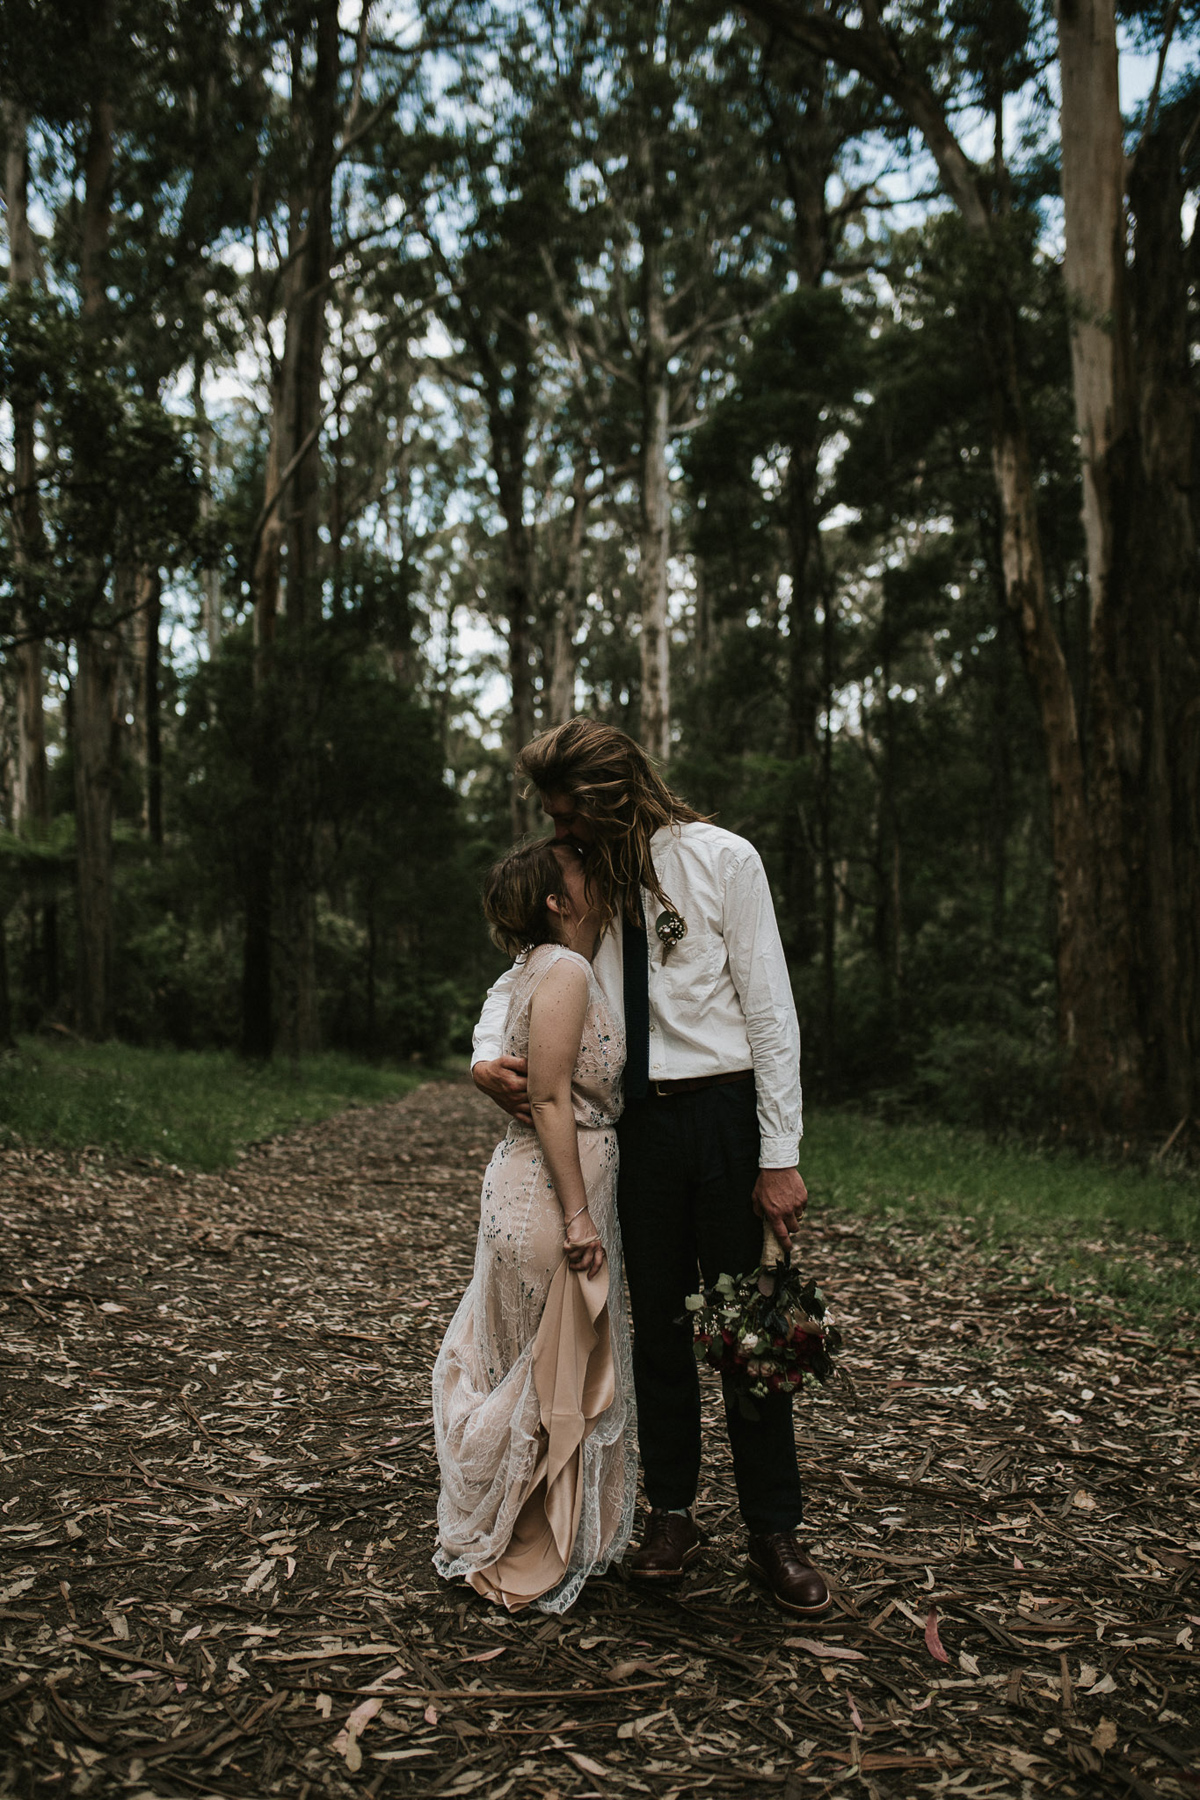 Berenice&Sam_Melbourne-Dandenongs-Elopement_Relaxed-Quirky-Candid-Wedding-Photography_68